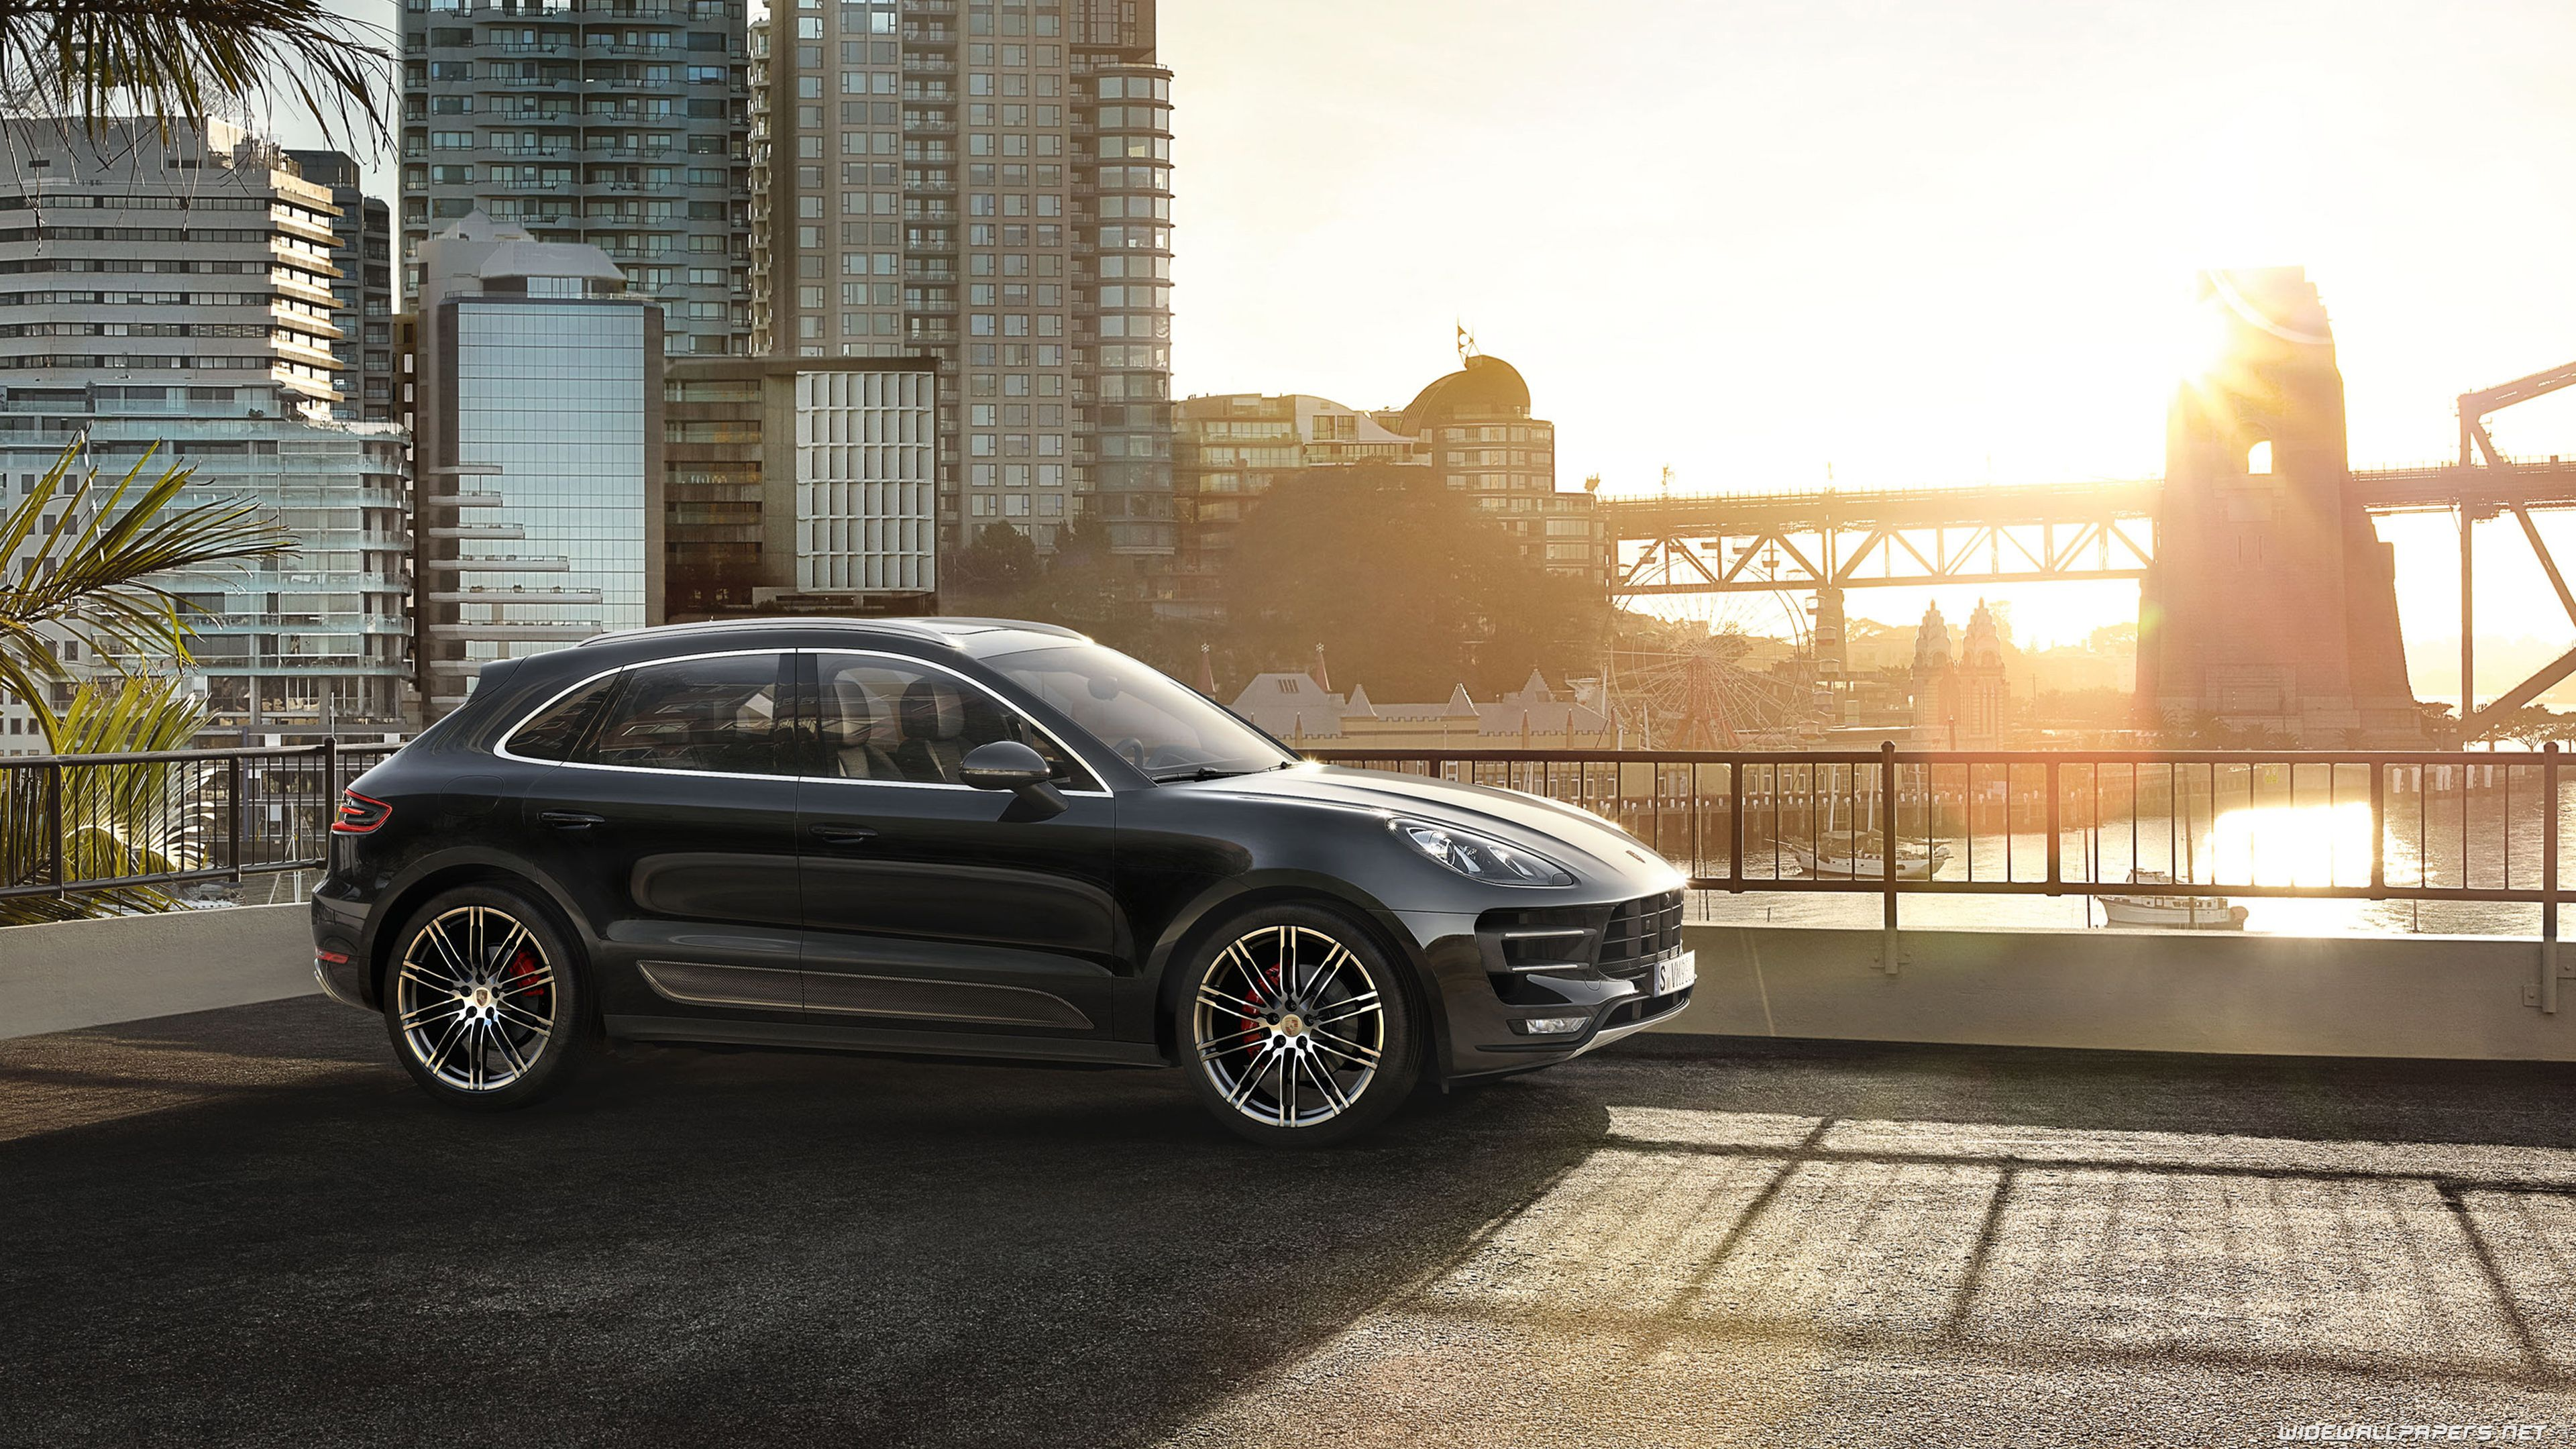 Porsche Macan Wallpapers , Top Free Porsche Macan